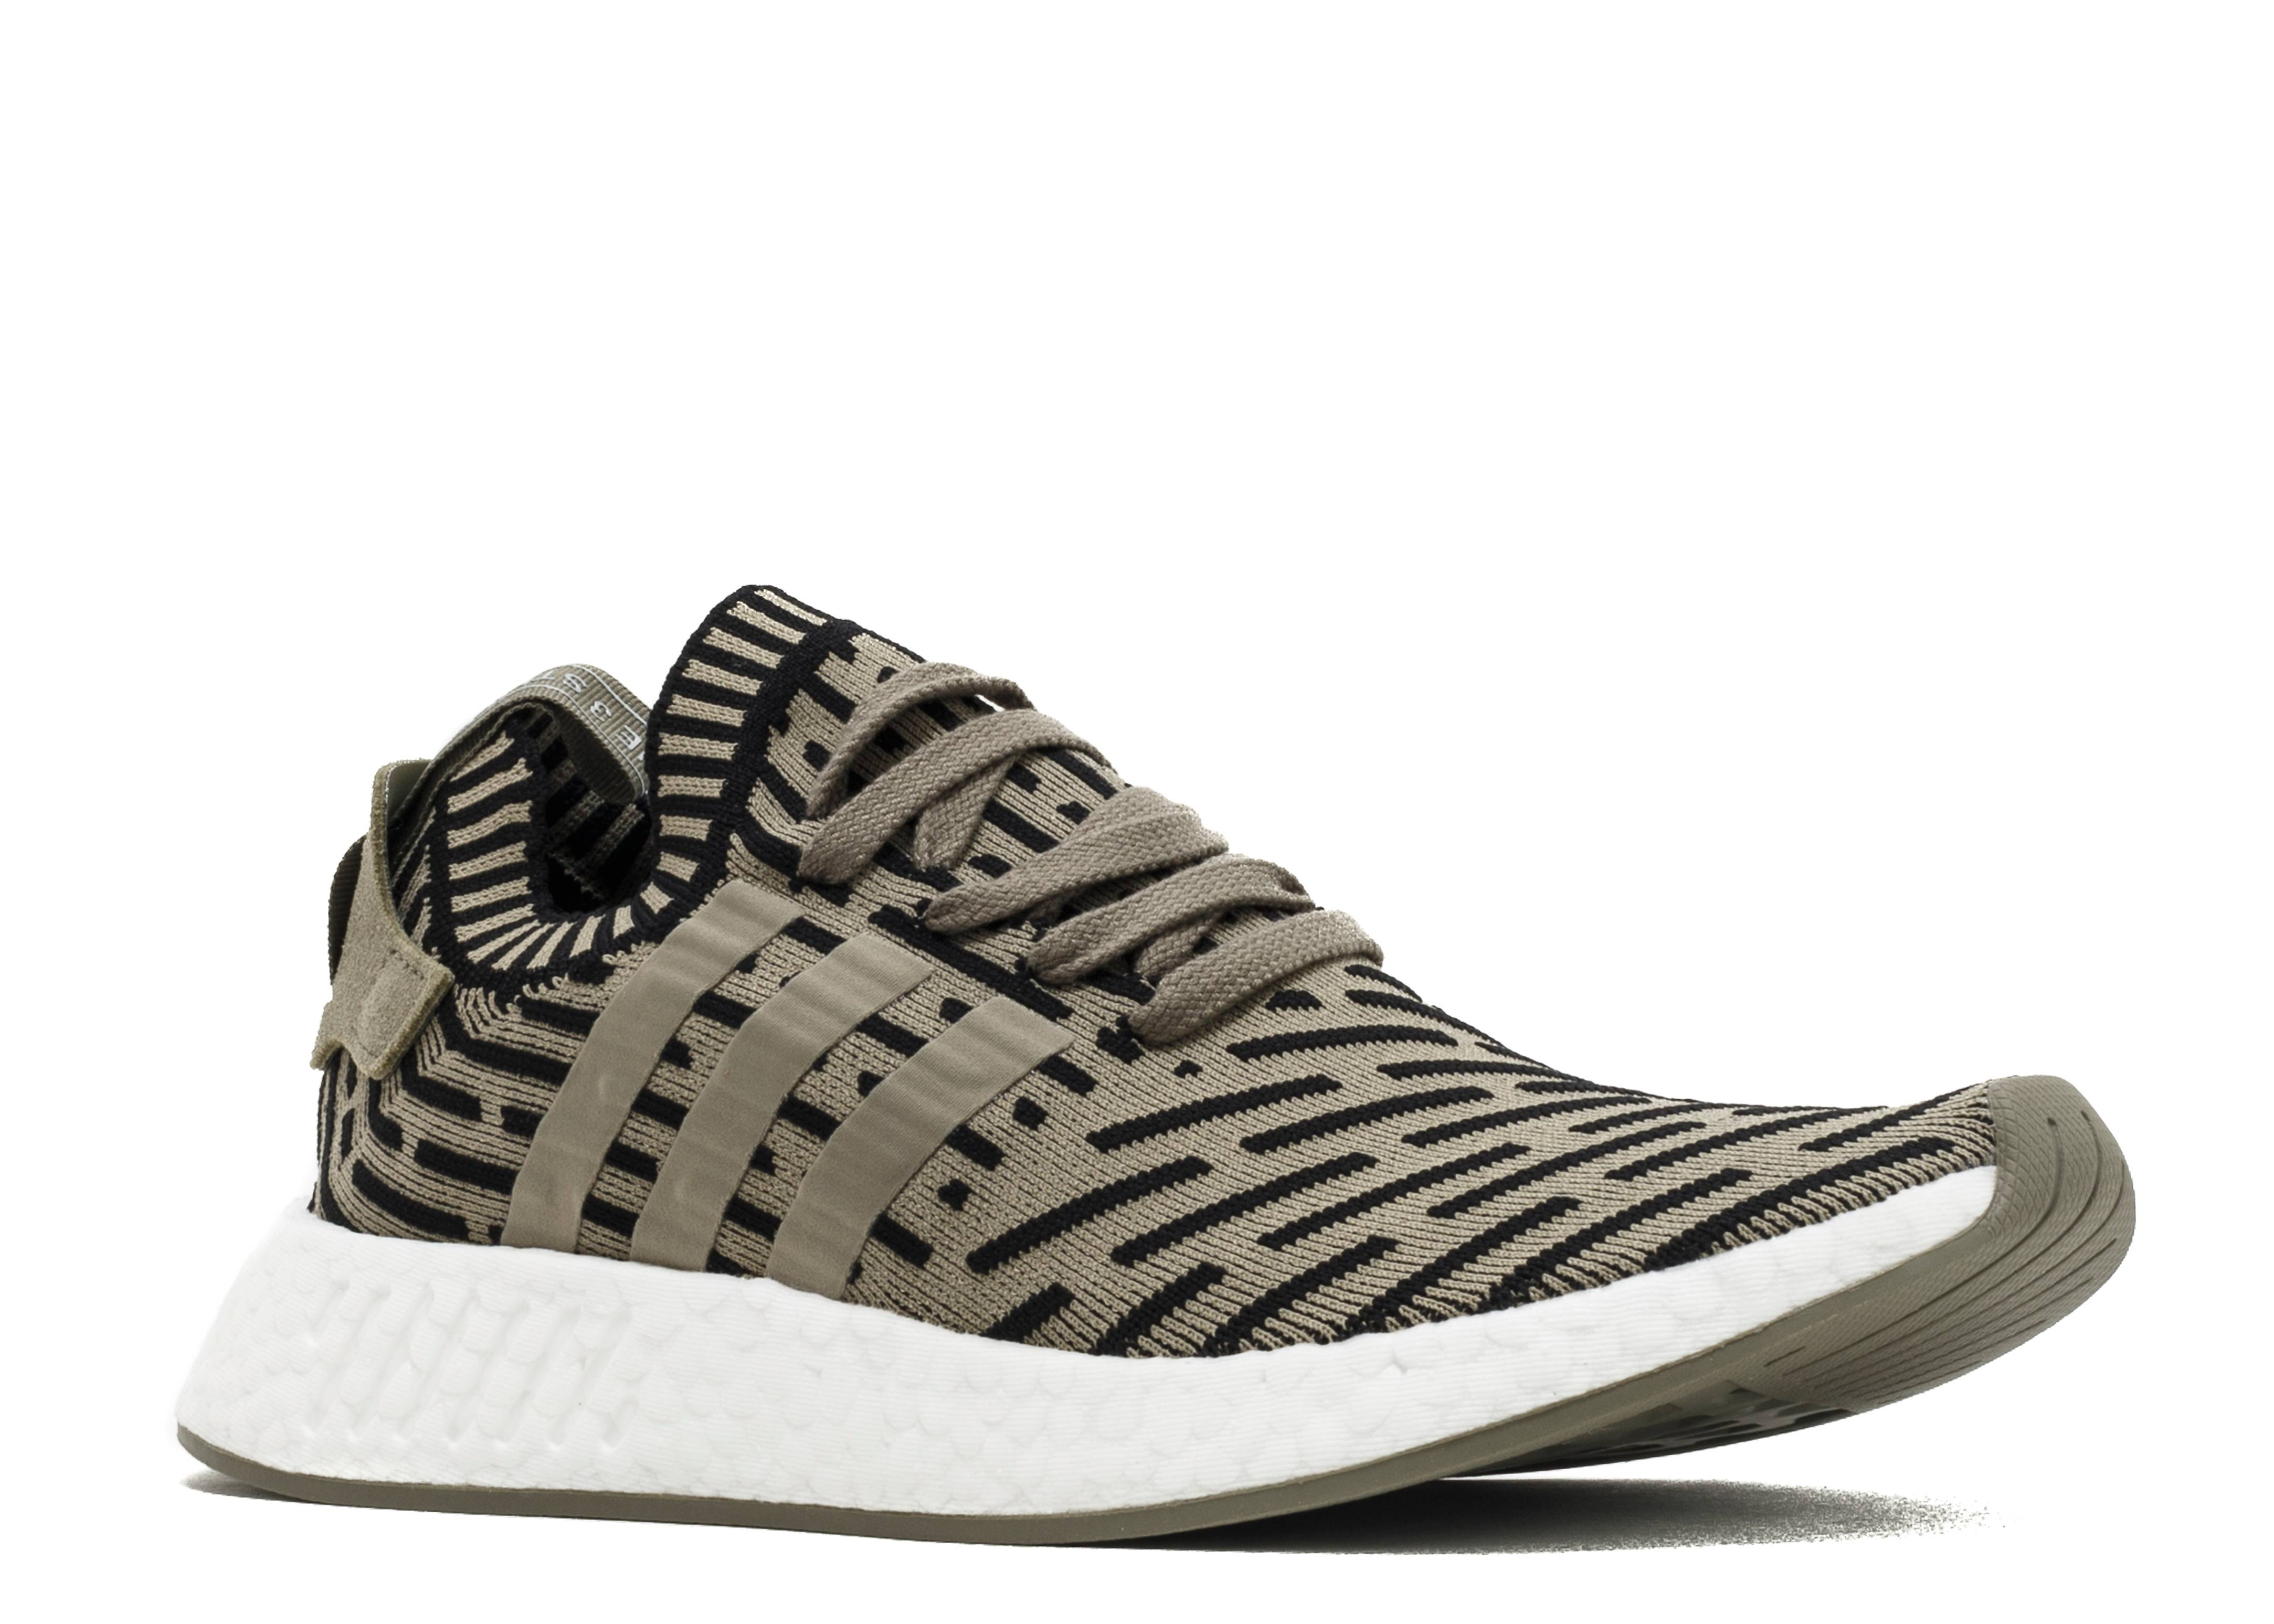 New Adidas NMD R2 Colorways Are Releasing In The Spring